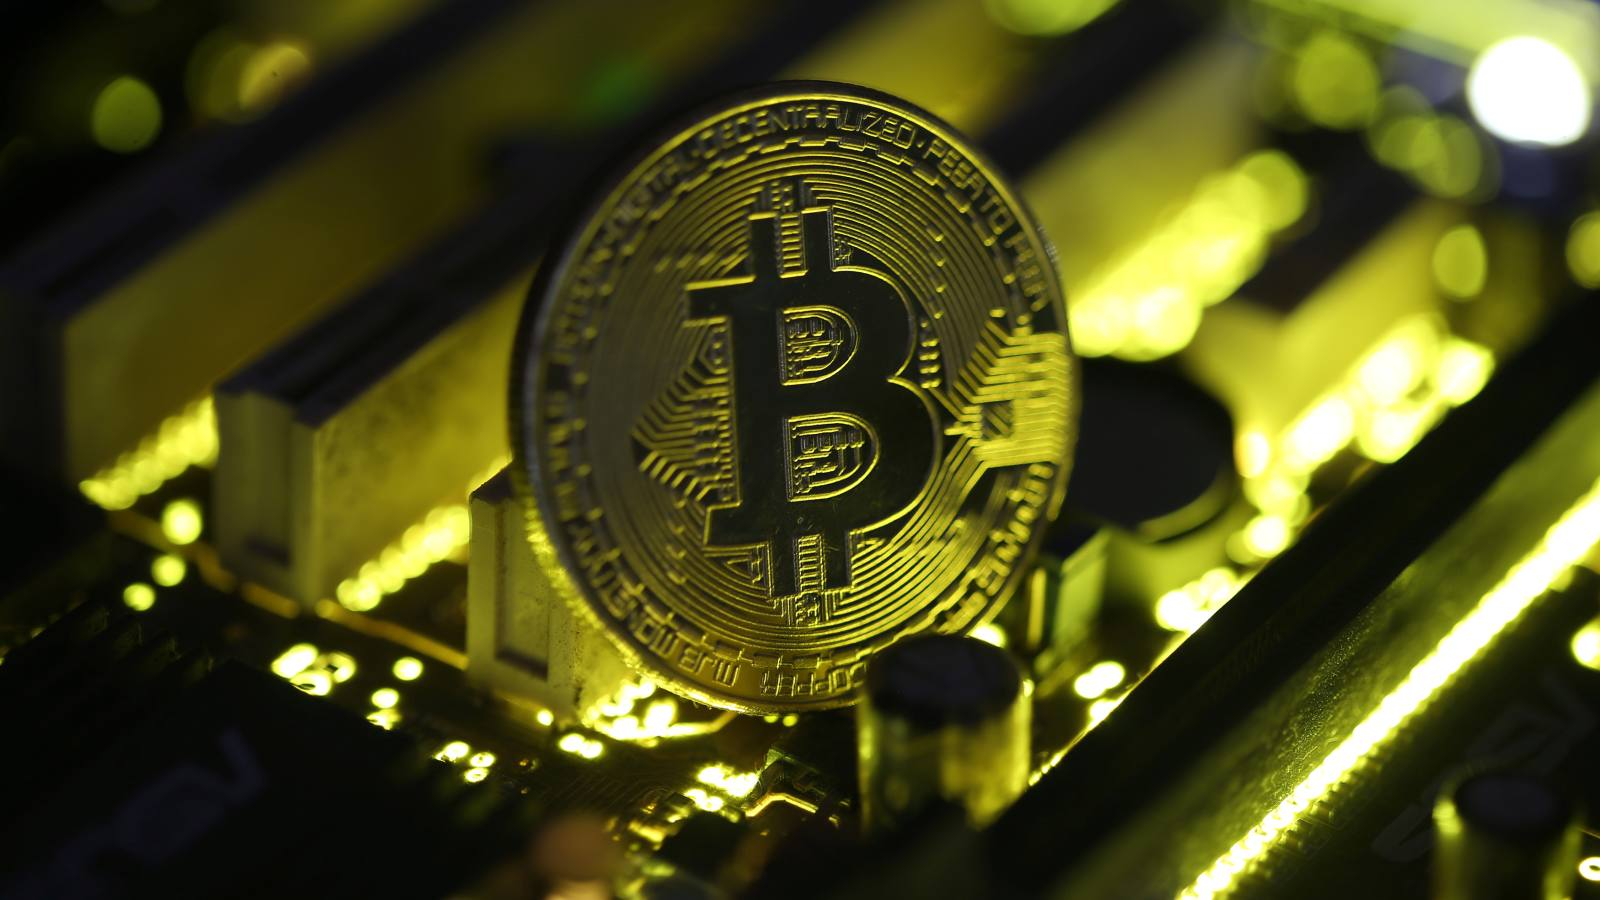 Japan's bitcoin trading platforms extend to Asia and beyond